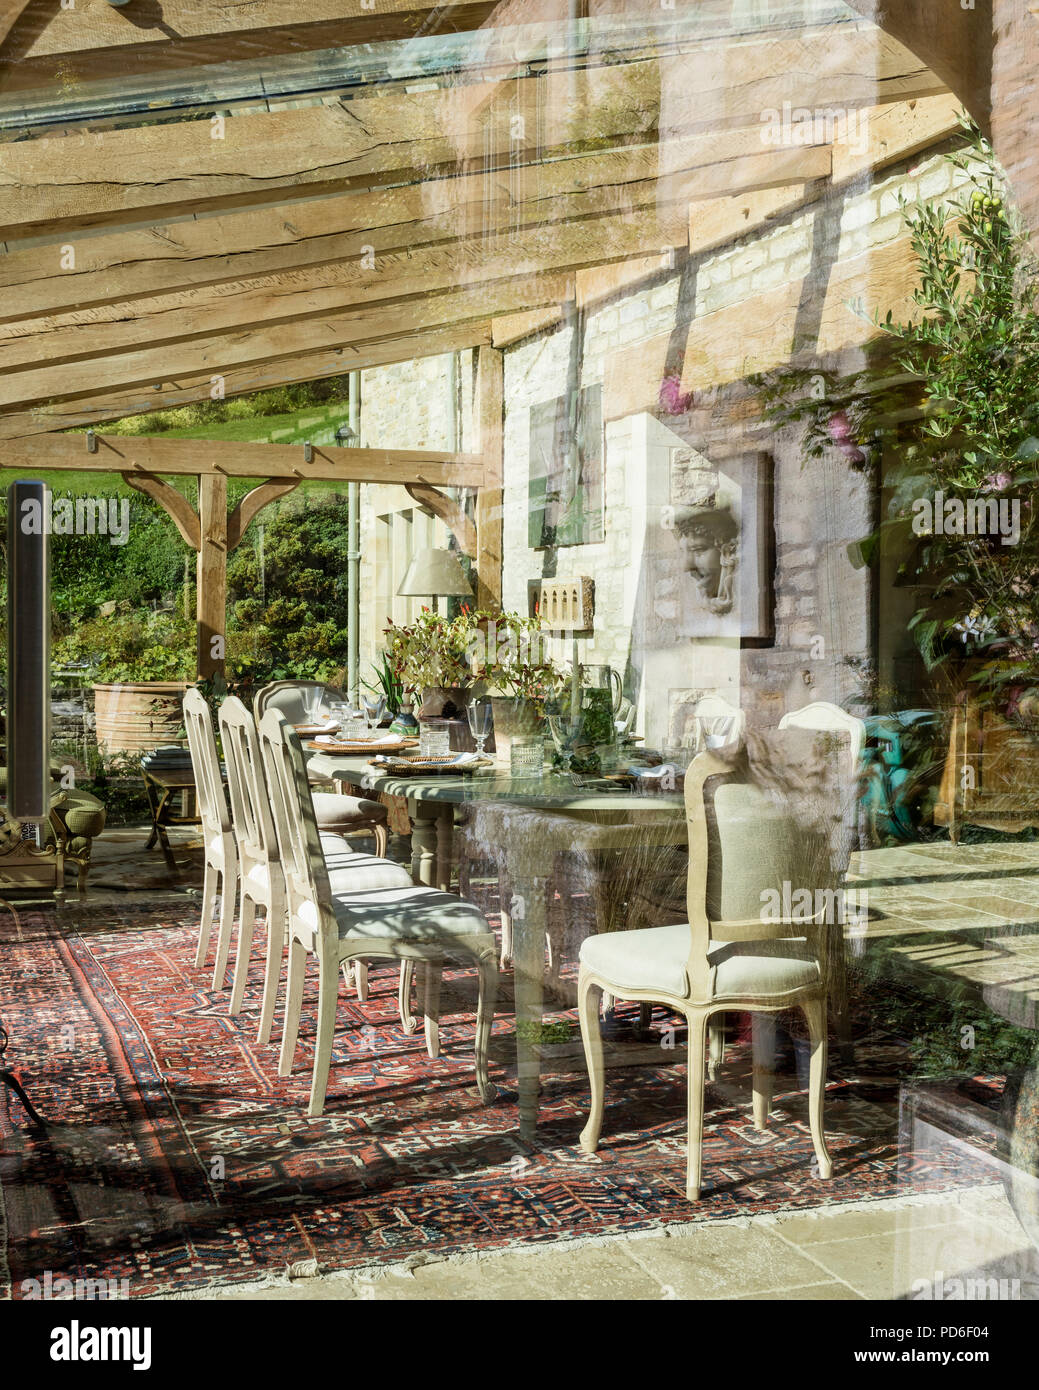 View into dining room of glass conservatory extension  19th century stone farmhouse. - Stock Image